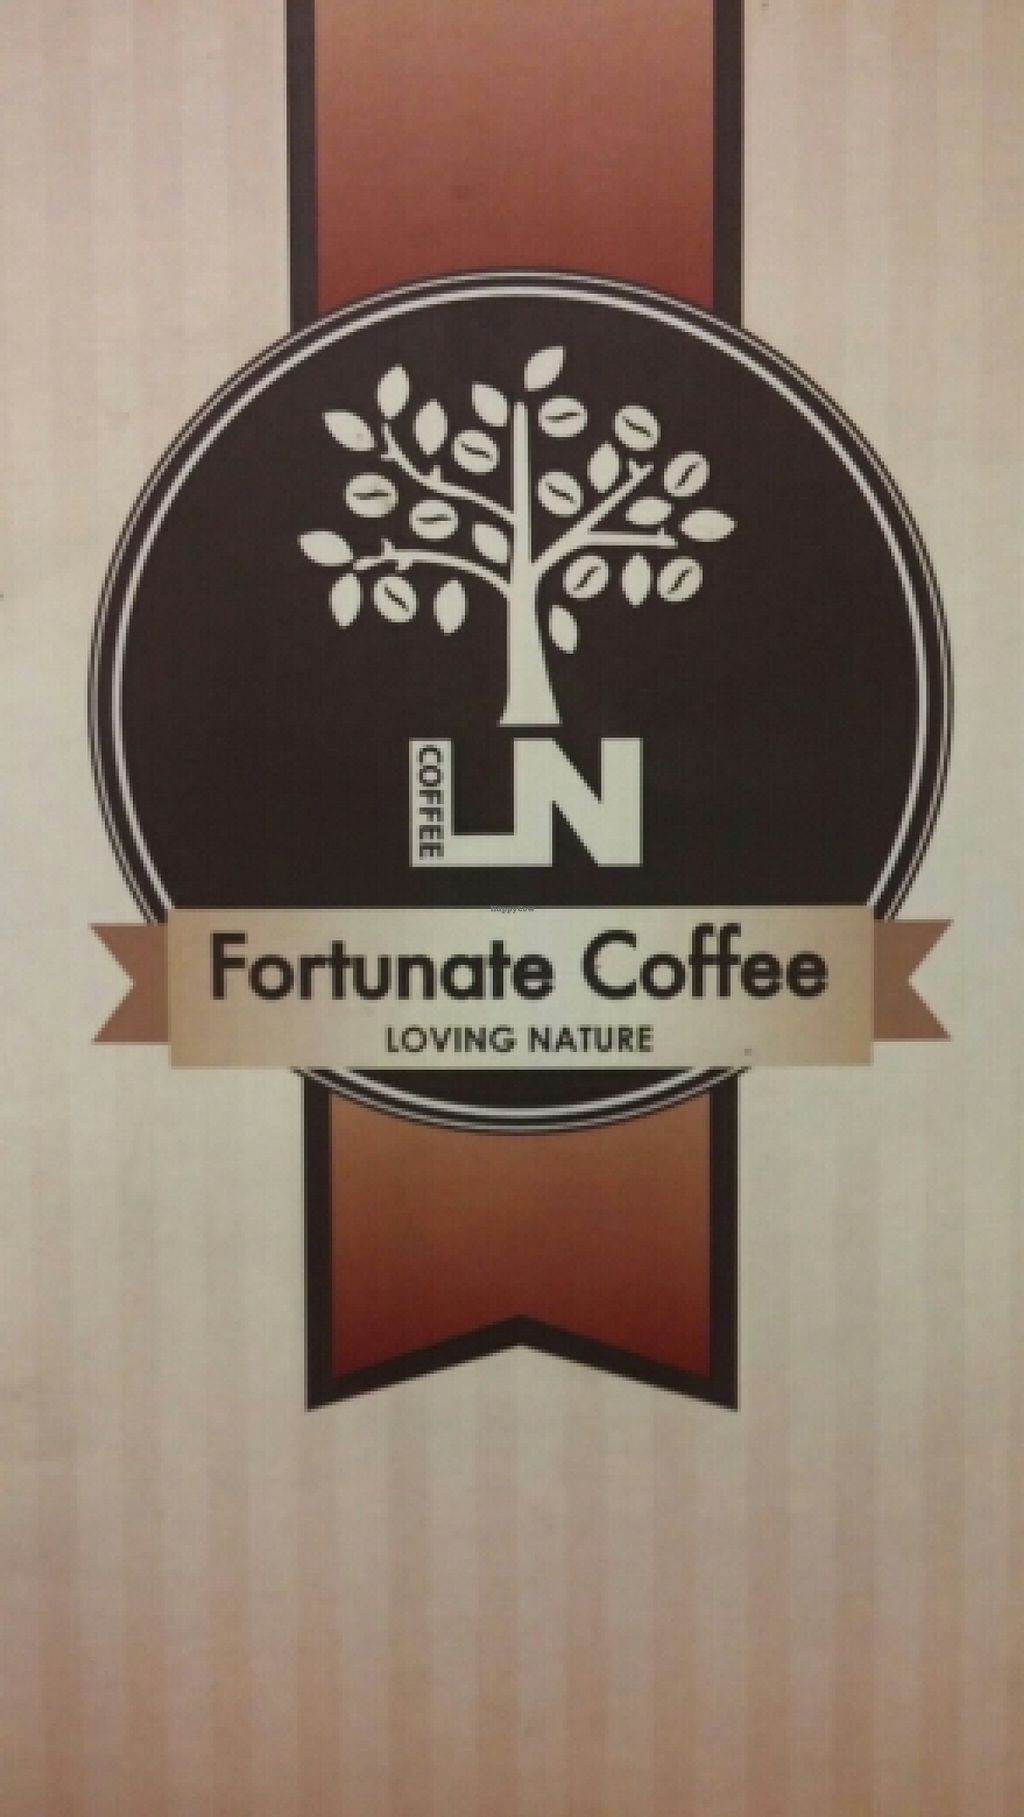 """Photo of LN Fortunate Coffee & Ice Cream  by <a href=""""/members/profile/Kaiyun"""">Kaiyun</a> <br/>Fortunate Coffee <br/> November 6, 2015  - <a href='/contact/abuse/image/62991/124076'>Report</a>"""